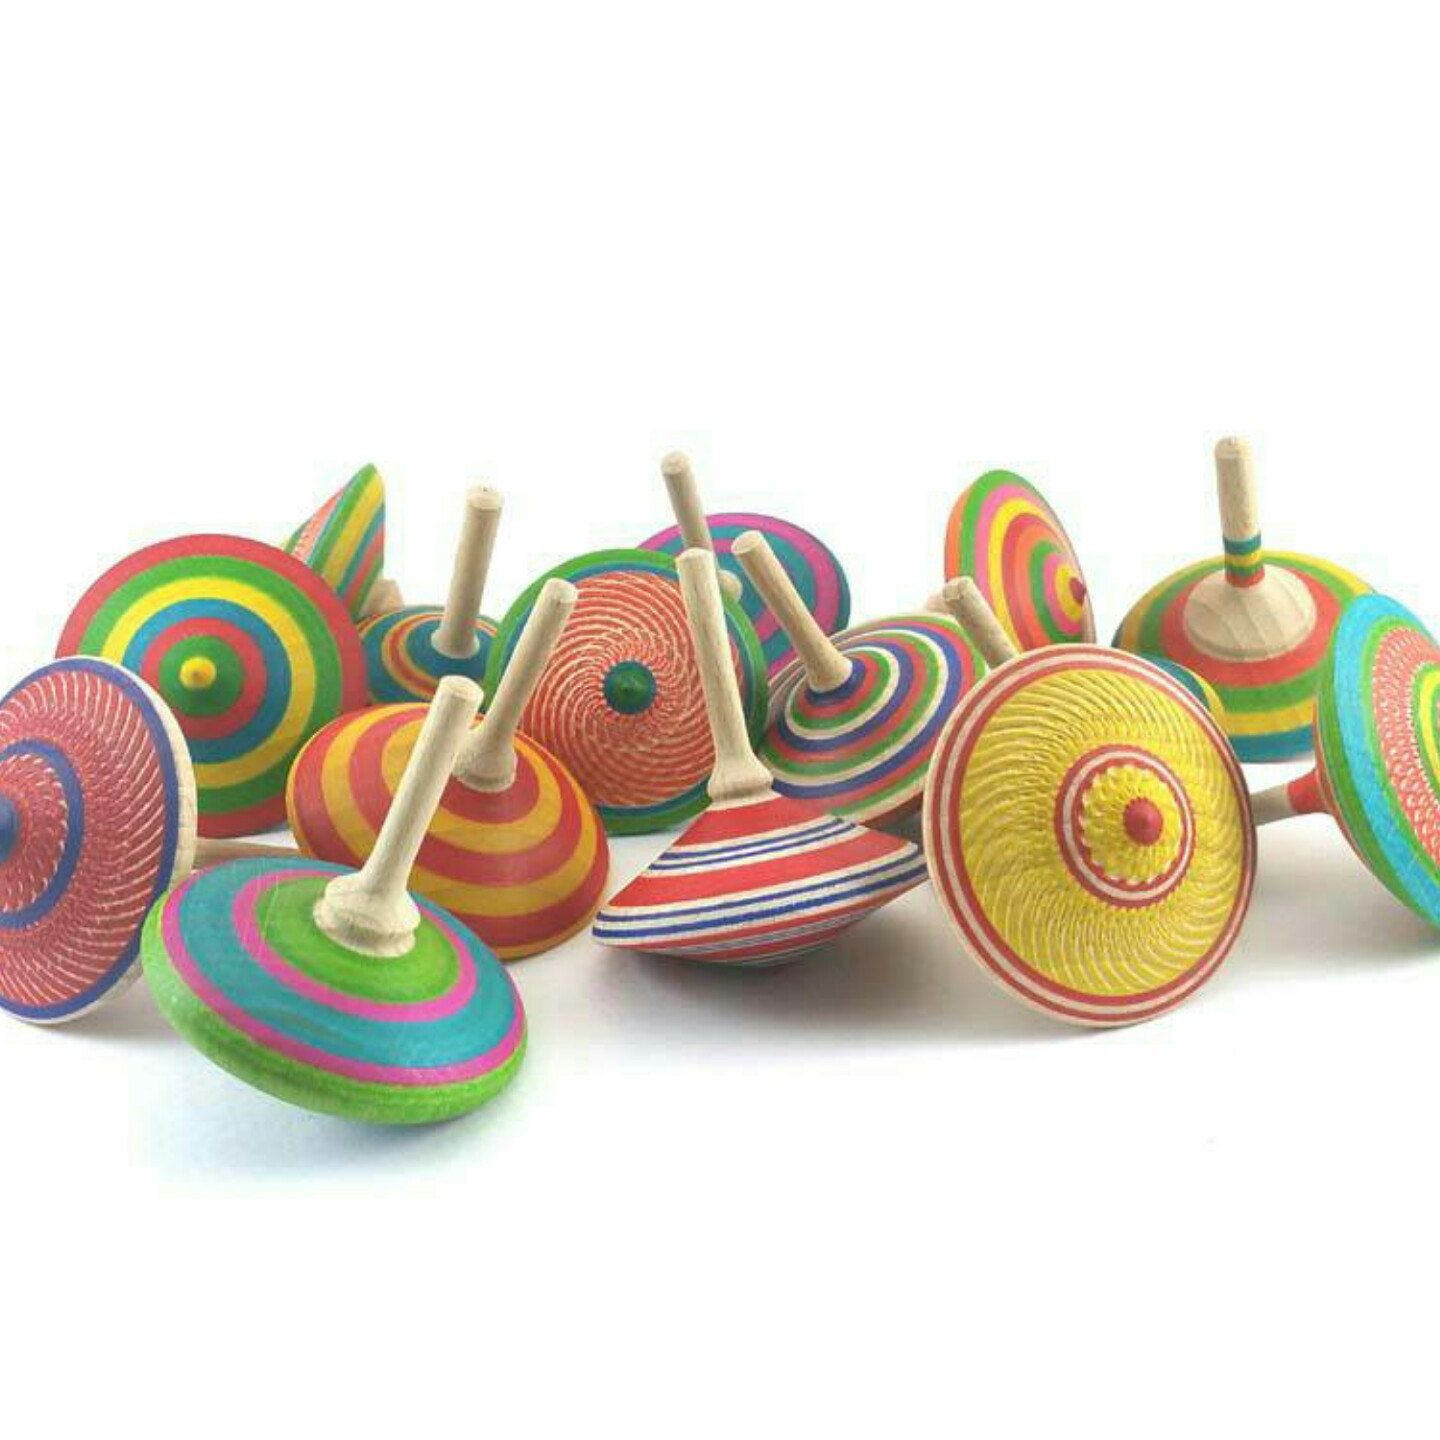 Three wooden spinning tops, Turned top, Handmade gifts ...